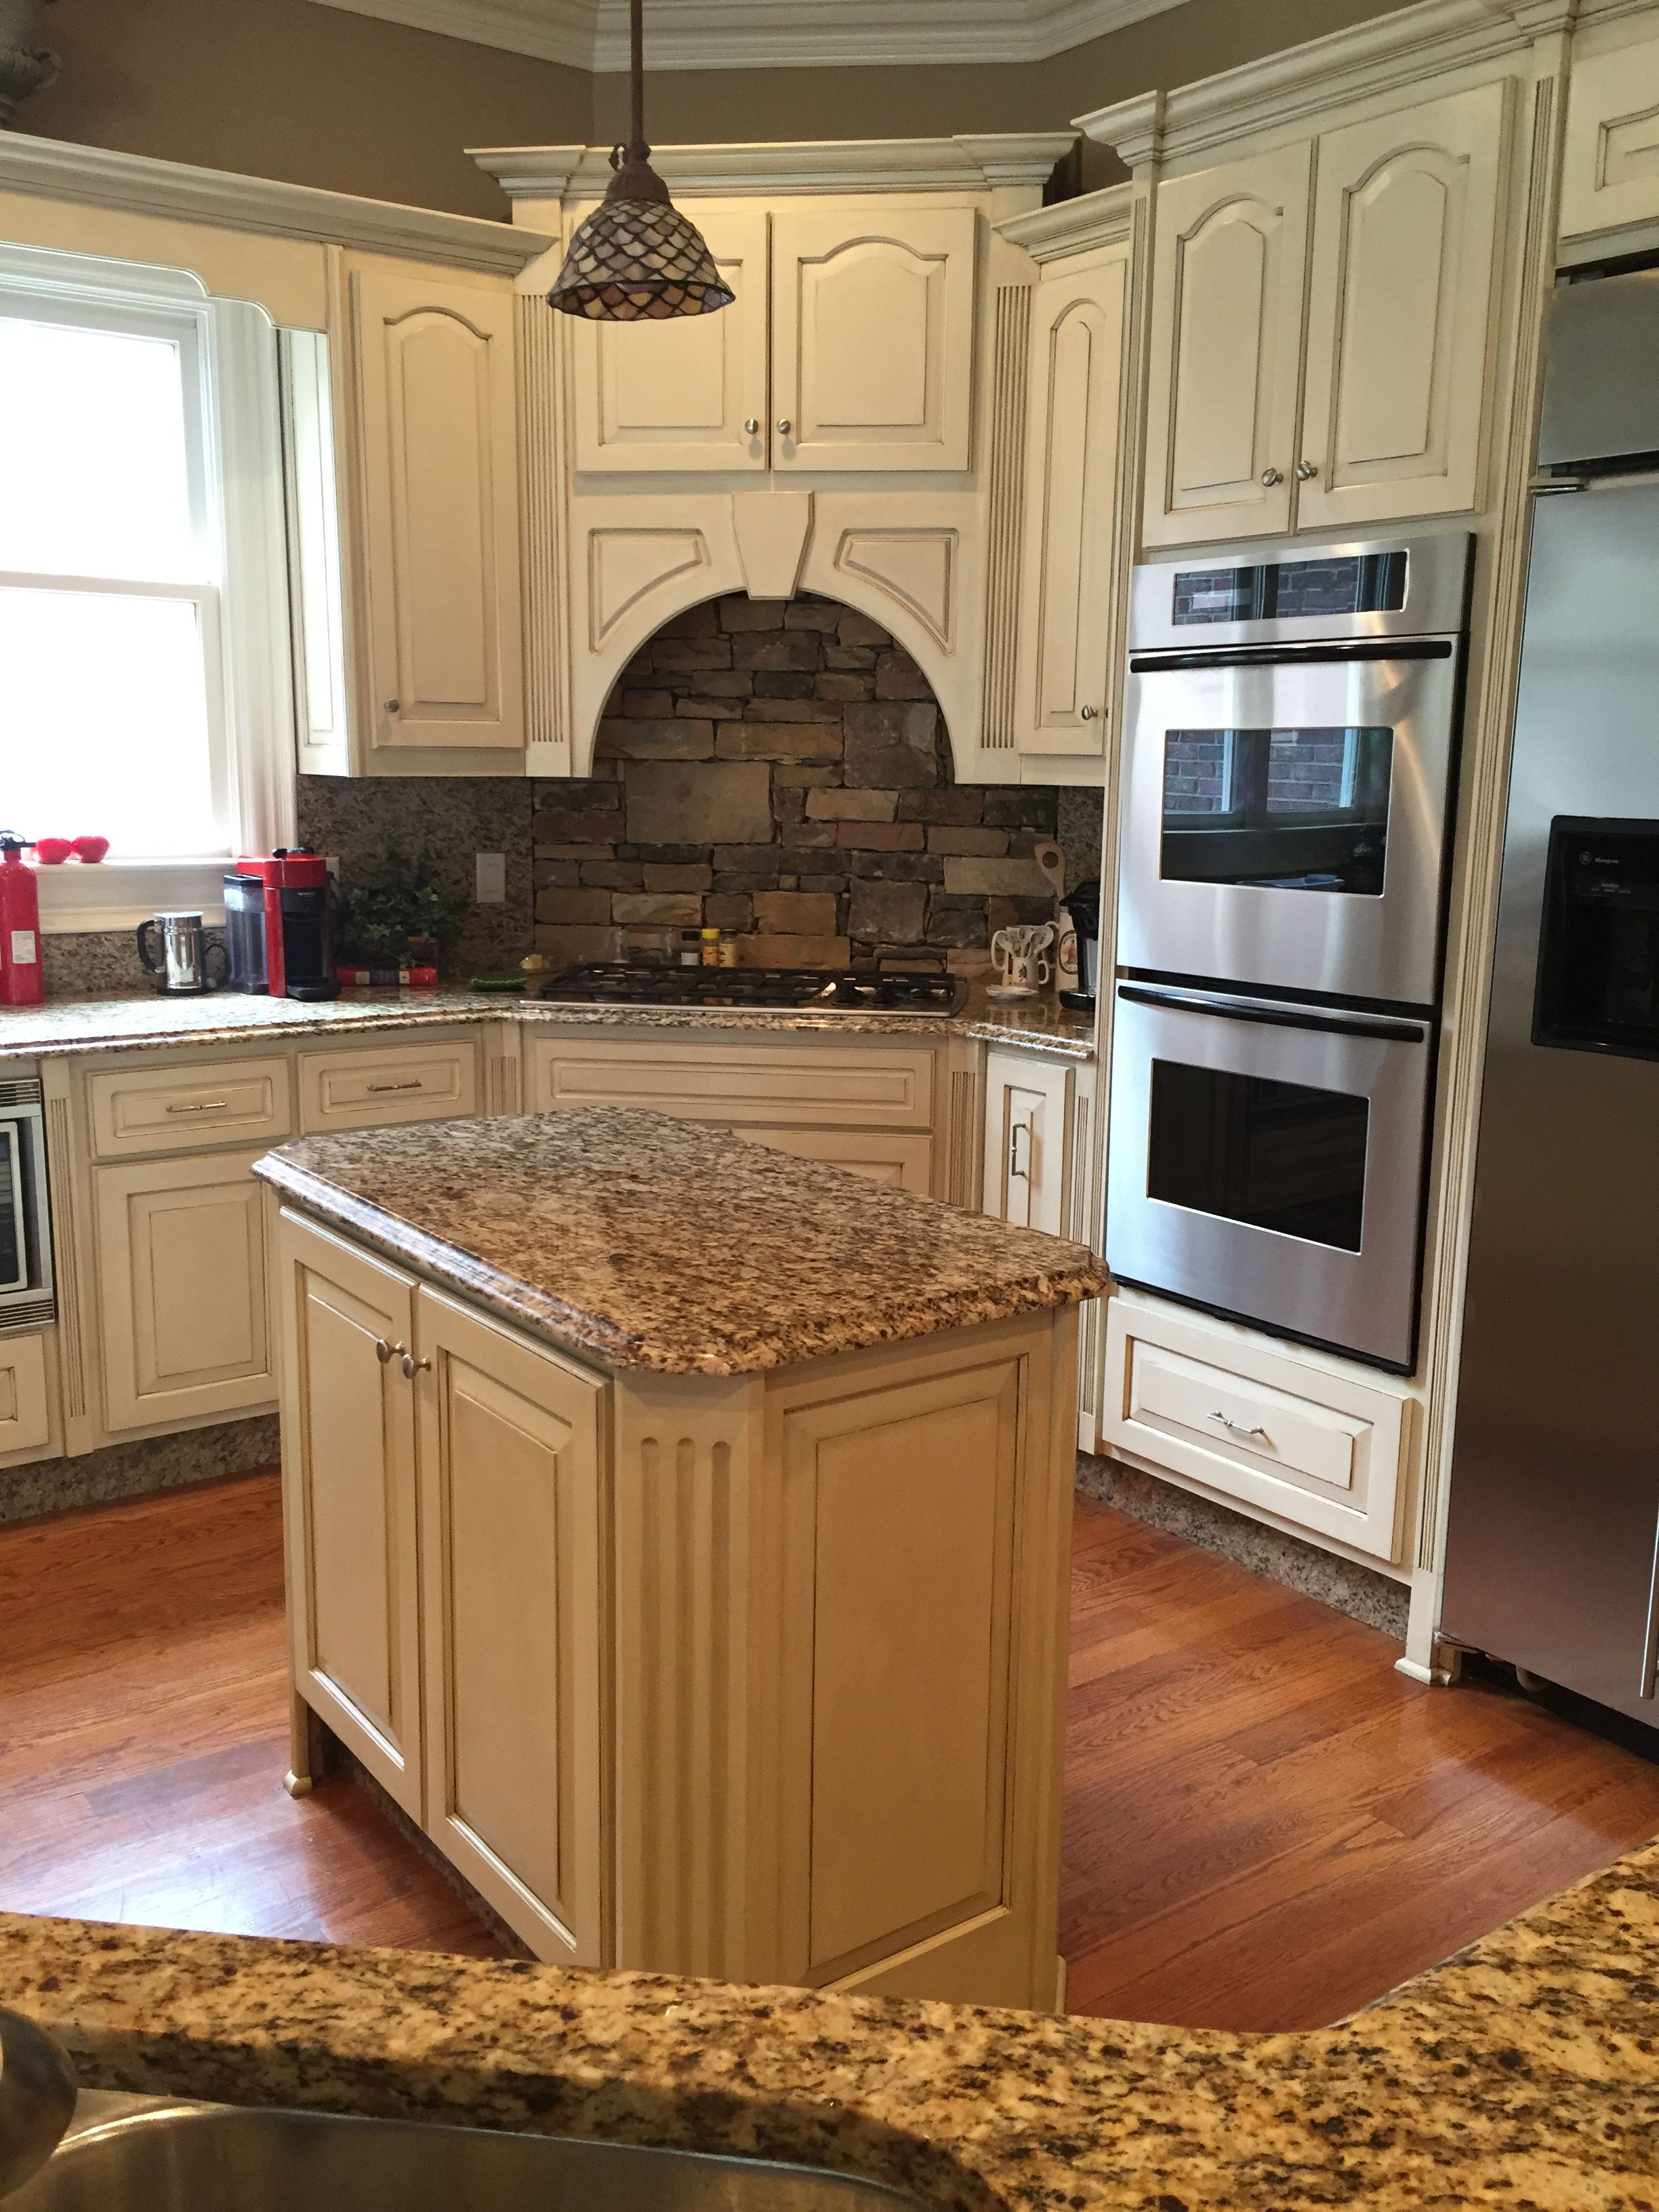 Kitchen Cabinets With Antique Glazed Finish Contrasting Kitchen Island Home Design Decor Kitchen Cabinets